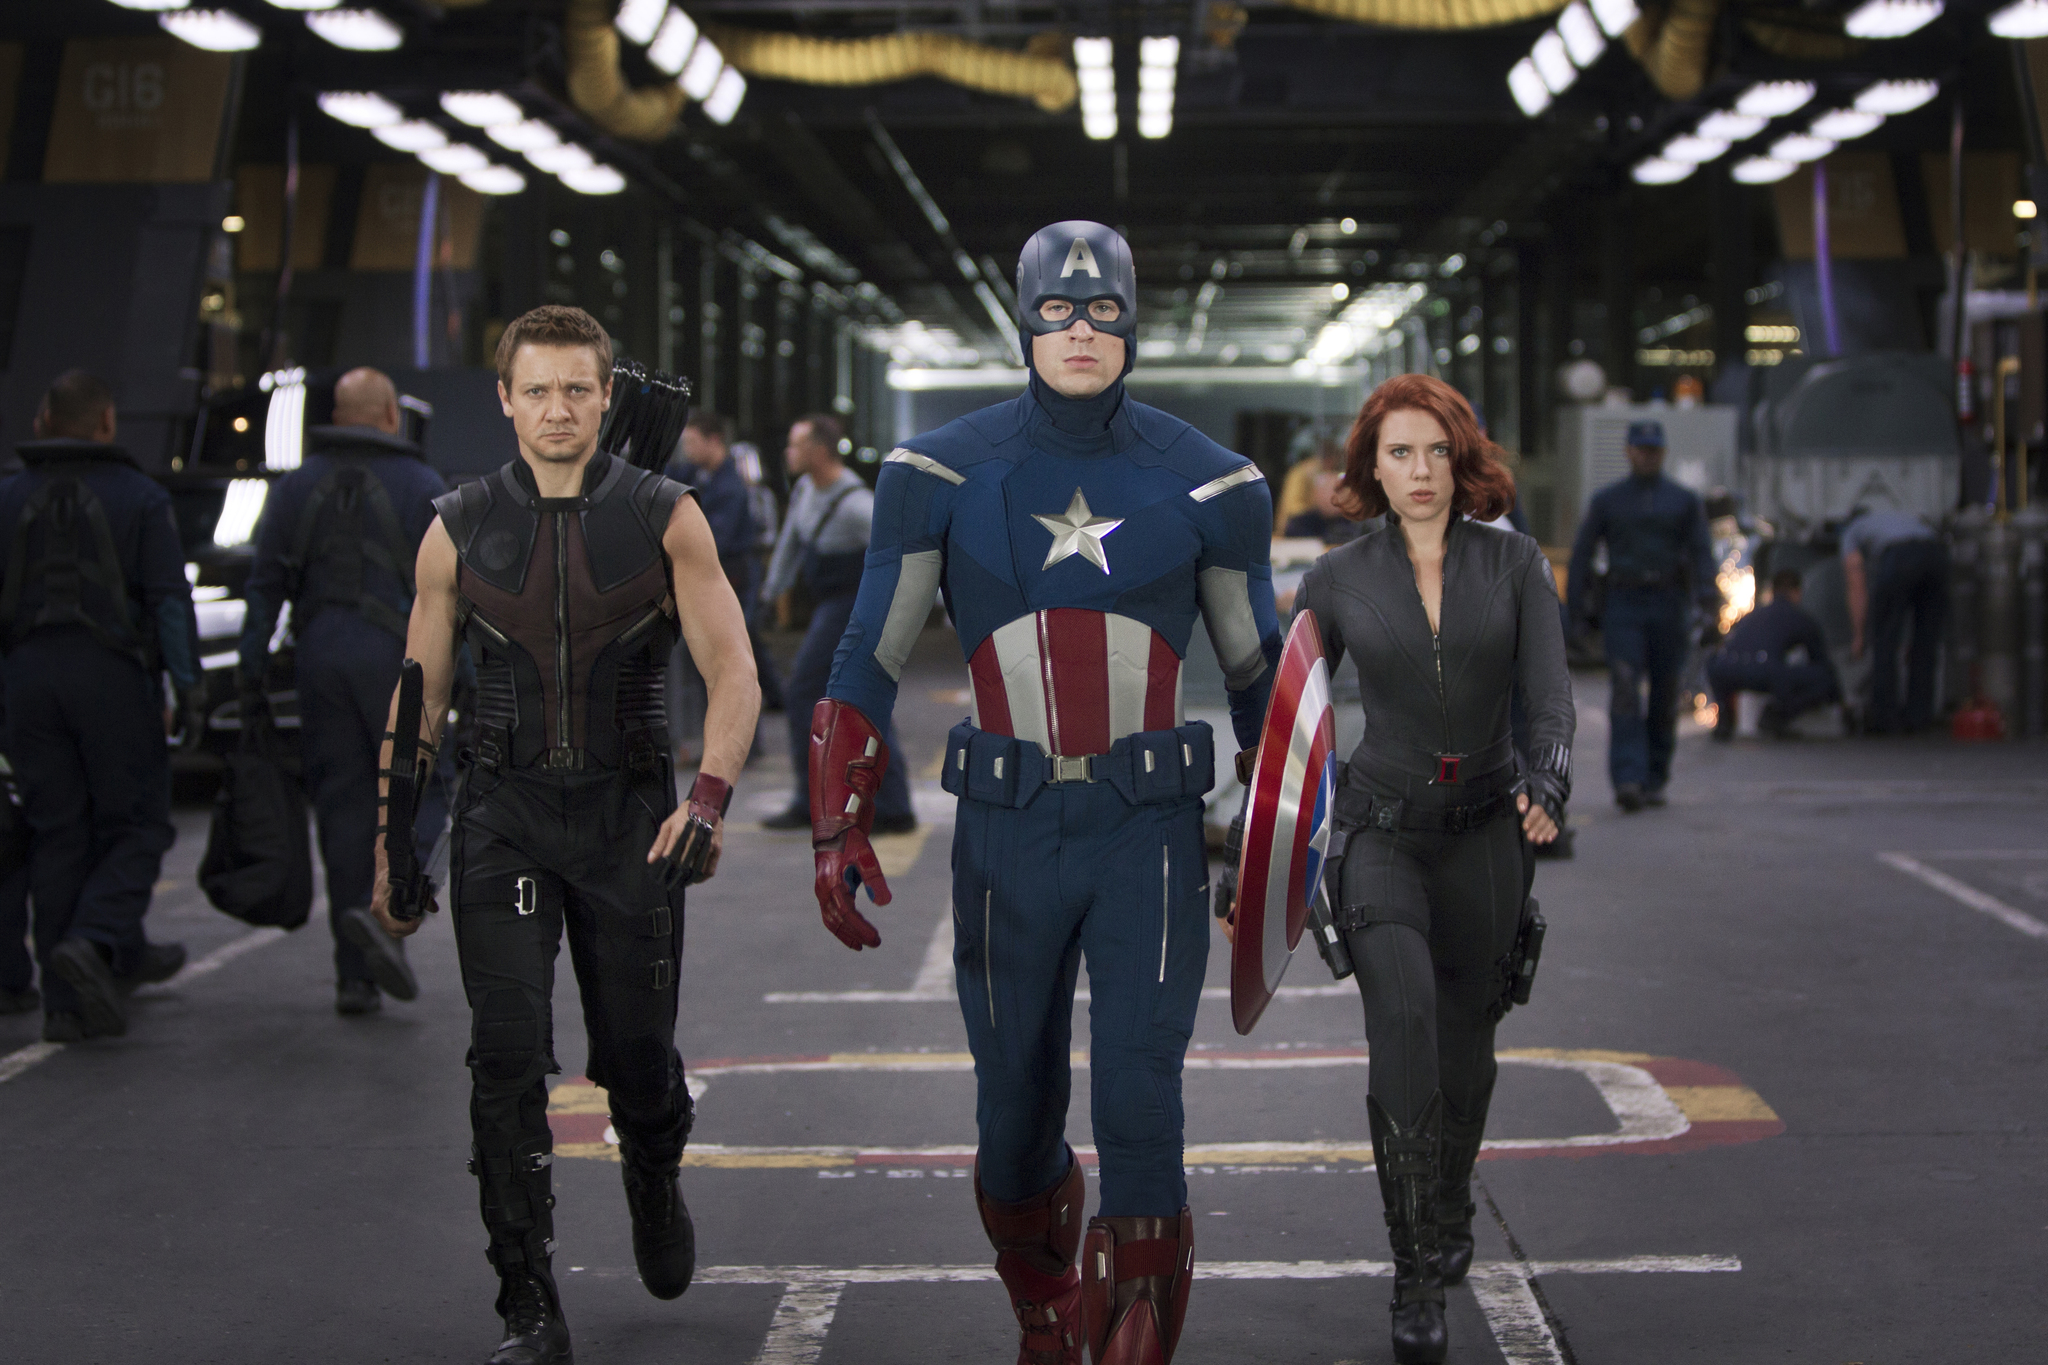 The Avengers gallery